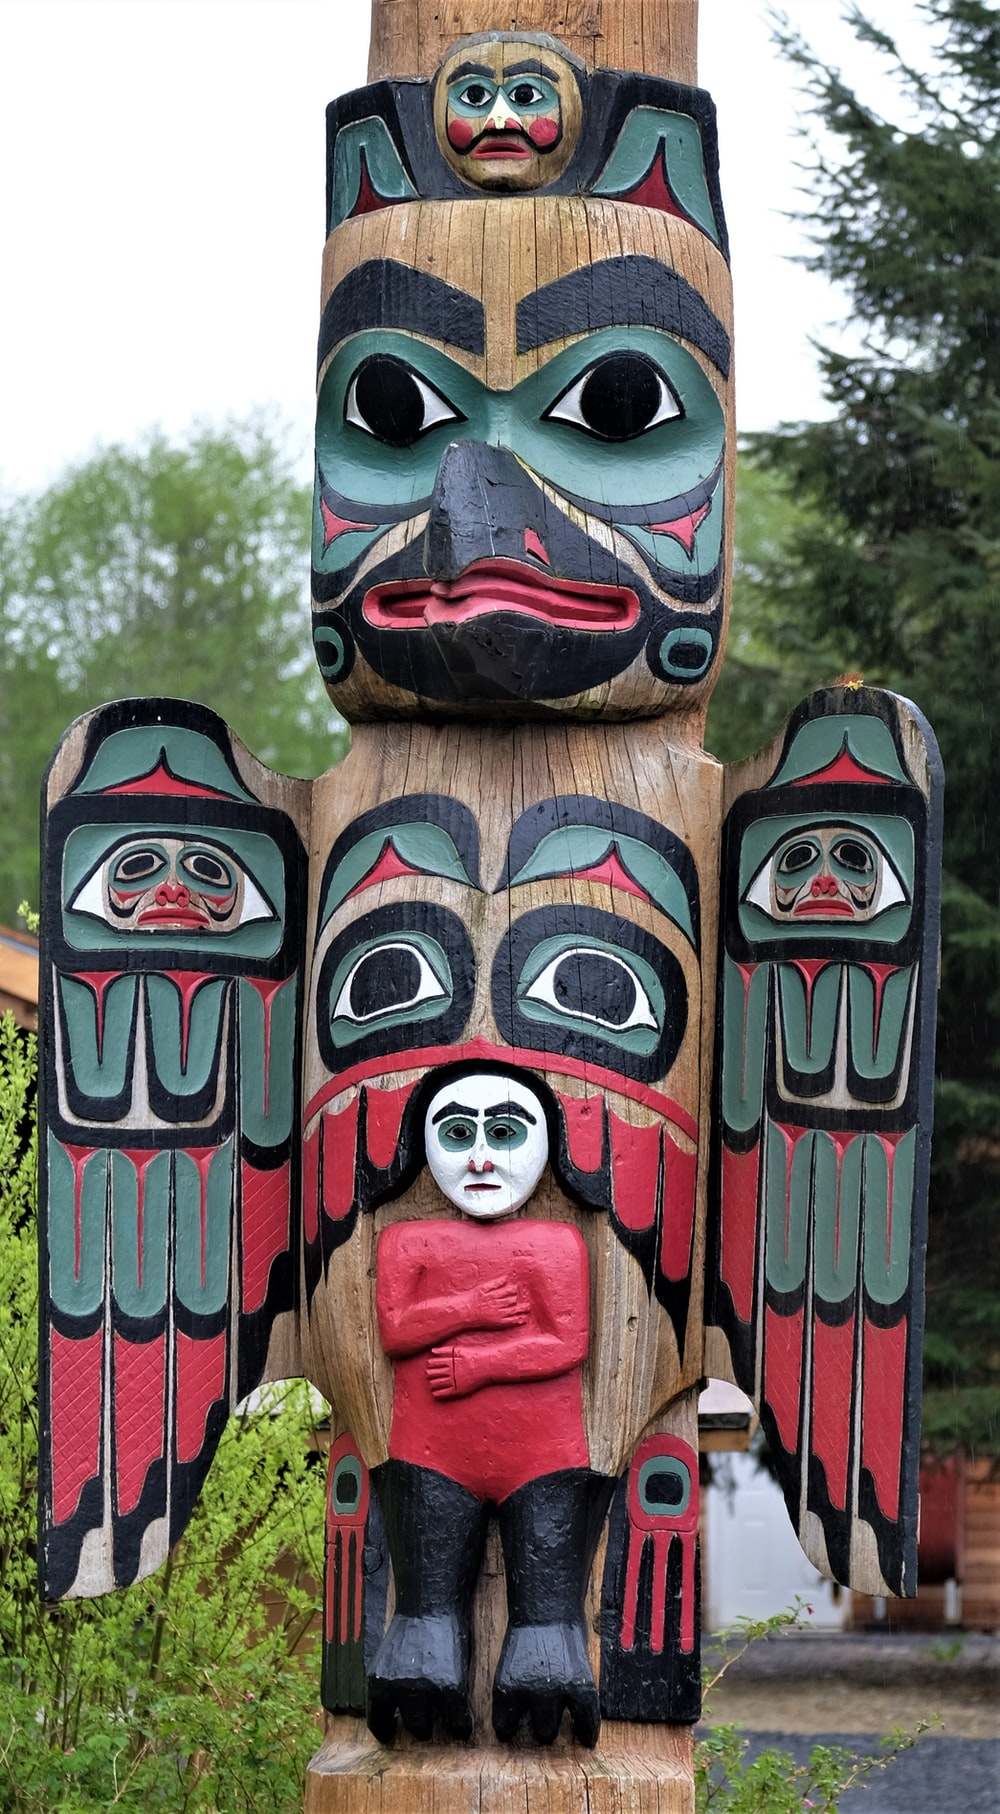 brown, red, and black totem pole near trees